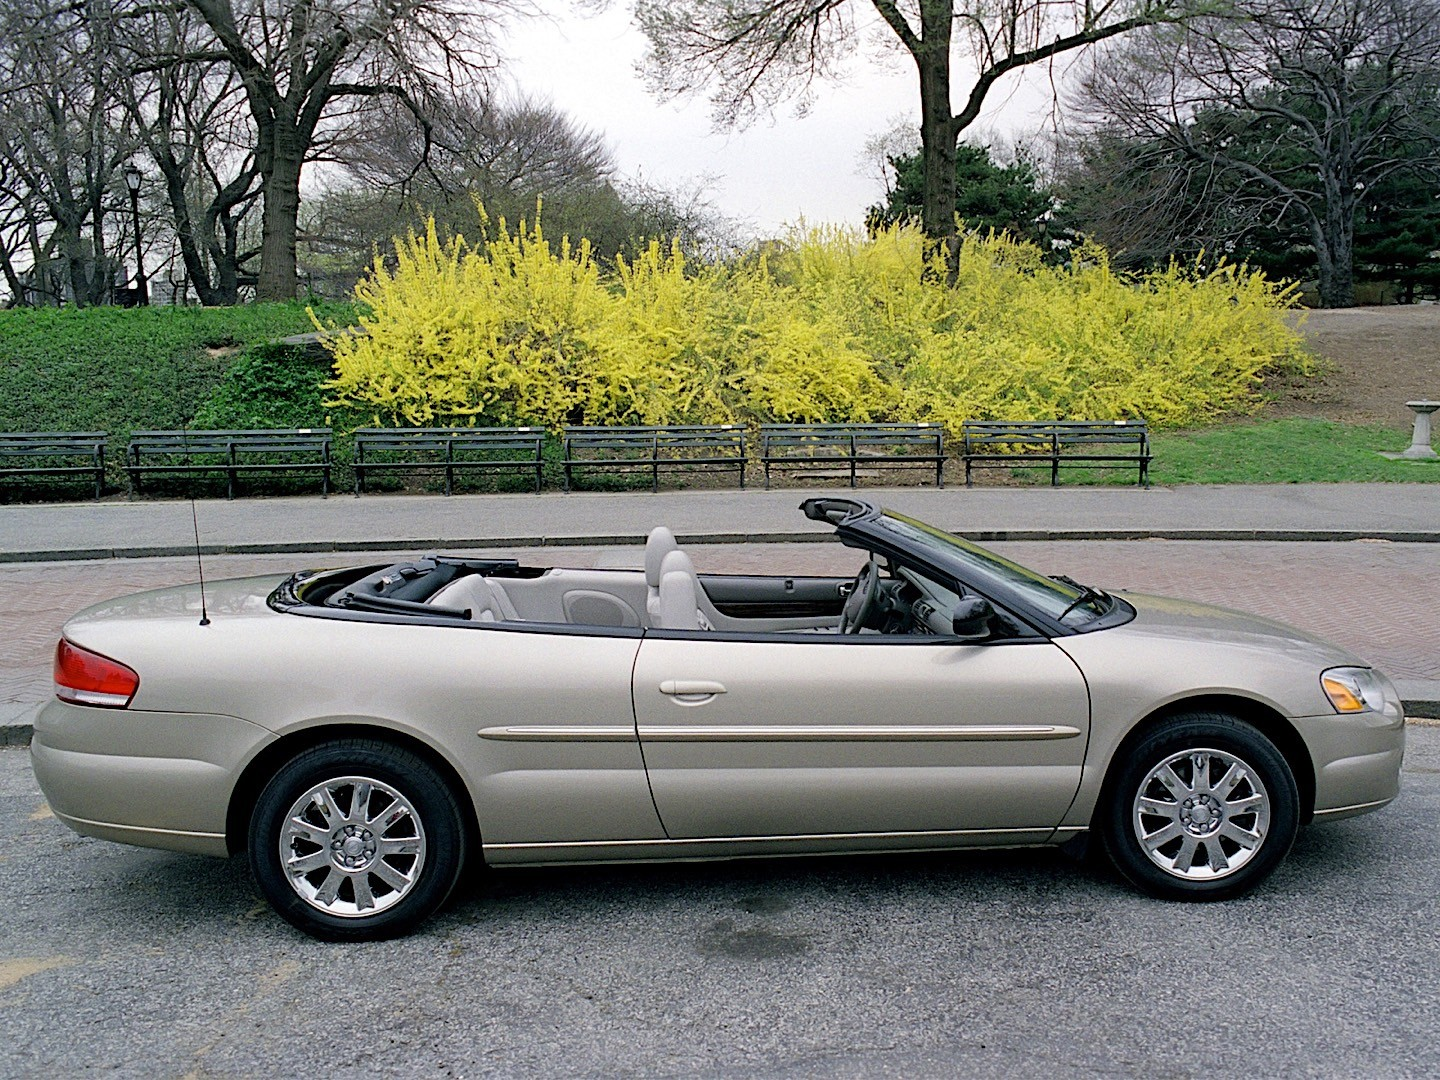 chrysler sebring convertible specs 2003 2004 2005 2006 2007 autoevolution. Black Bedroom Furniture Sets. Home Design Ideas